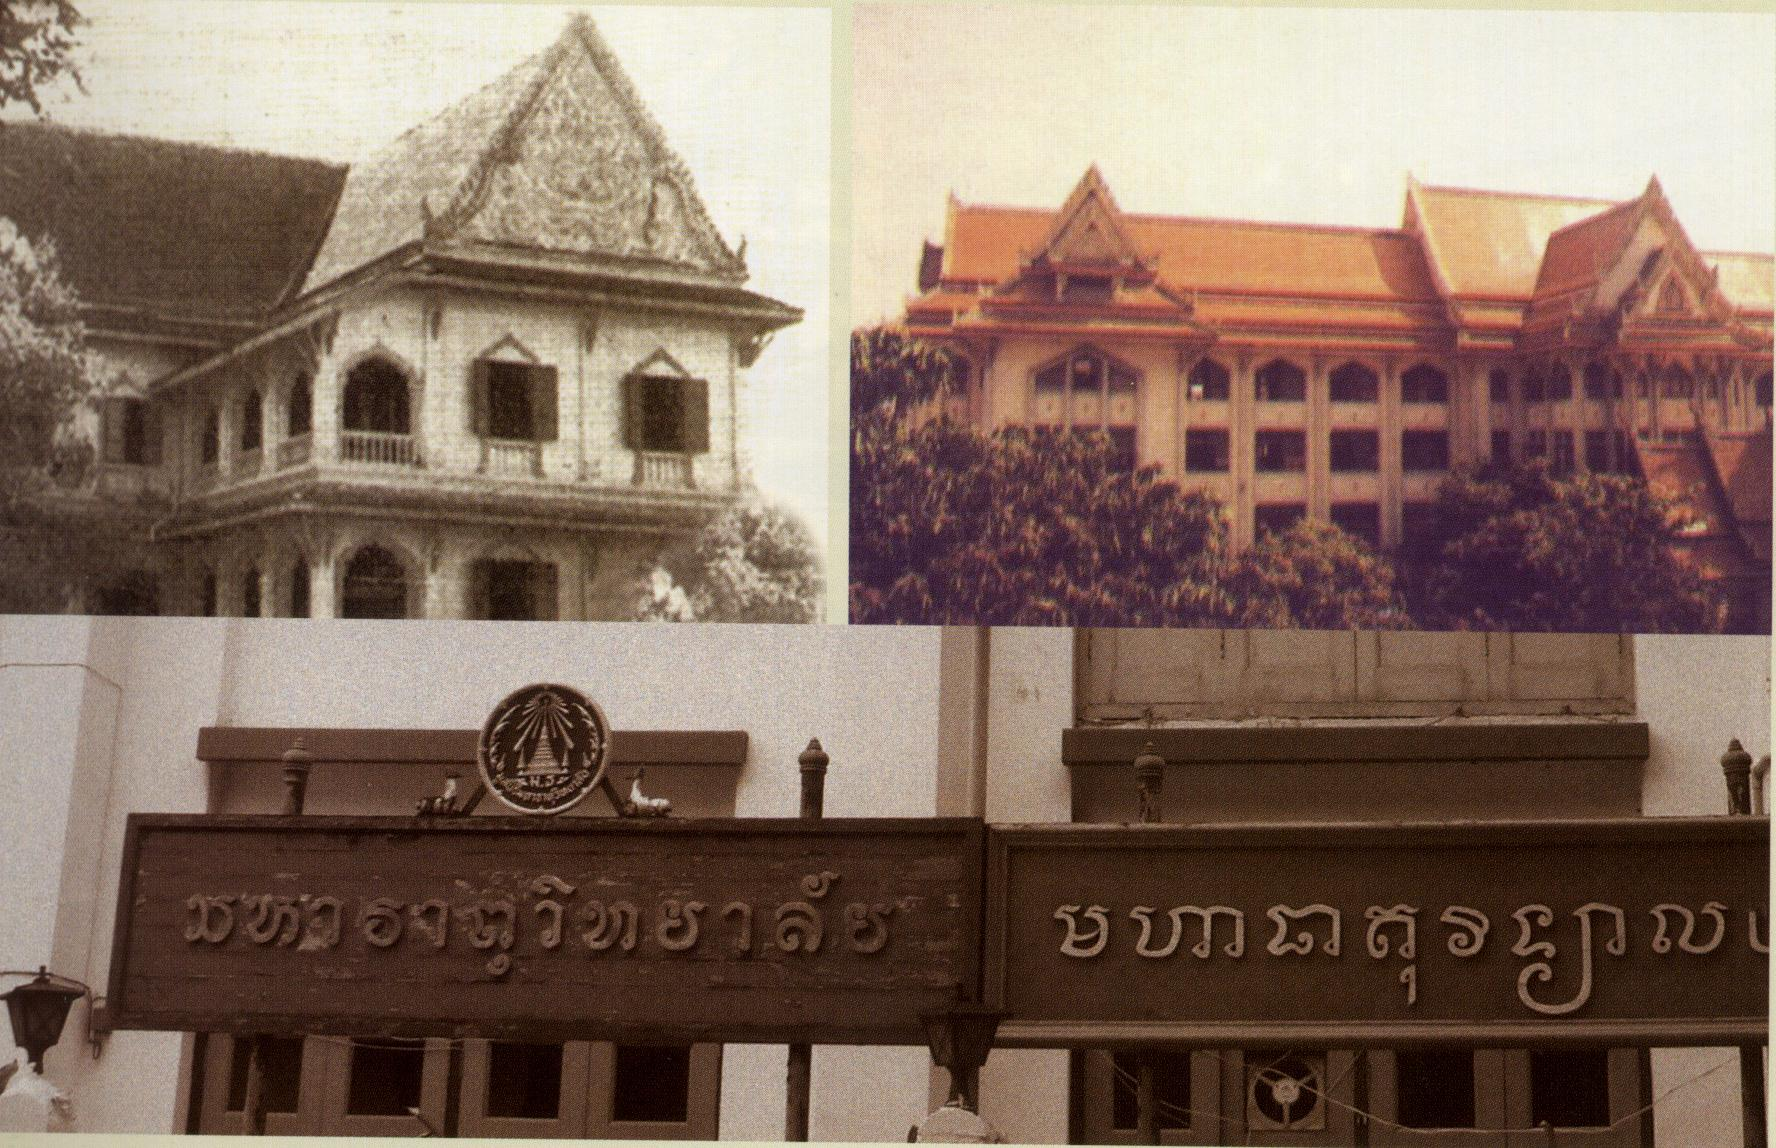 The Chronology of Mahachulalongkornrajavidyalaya University